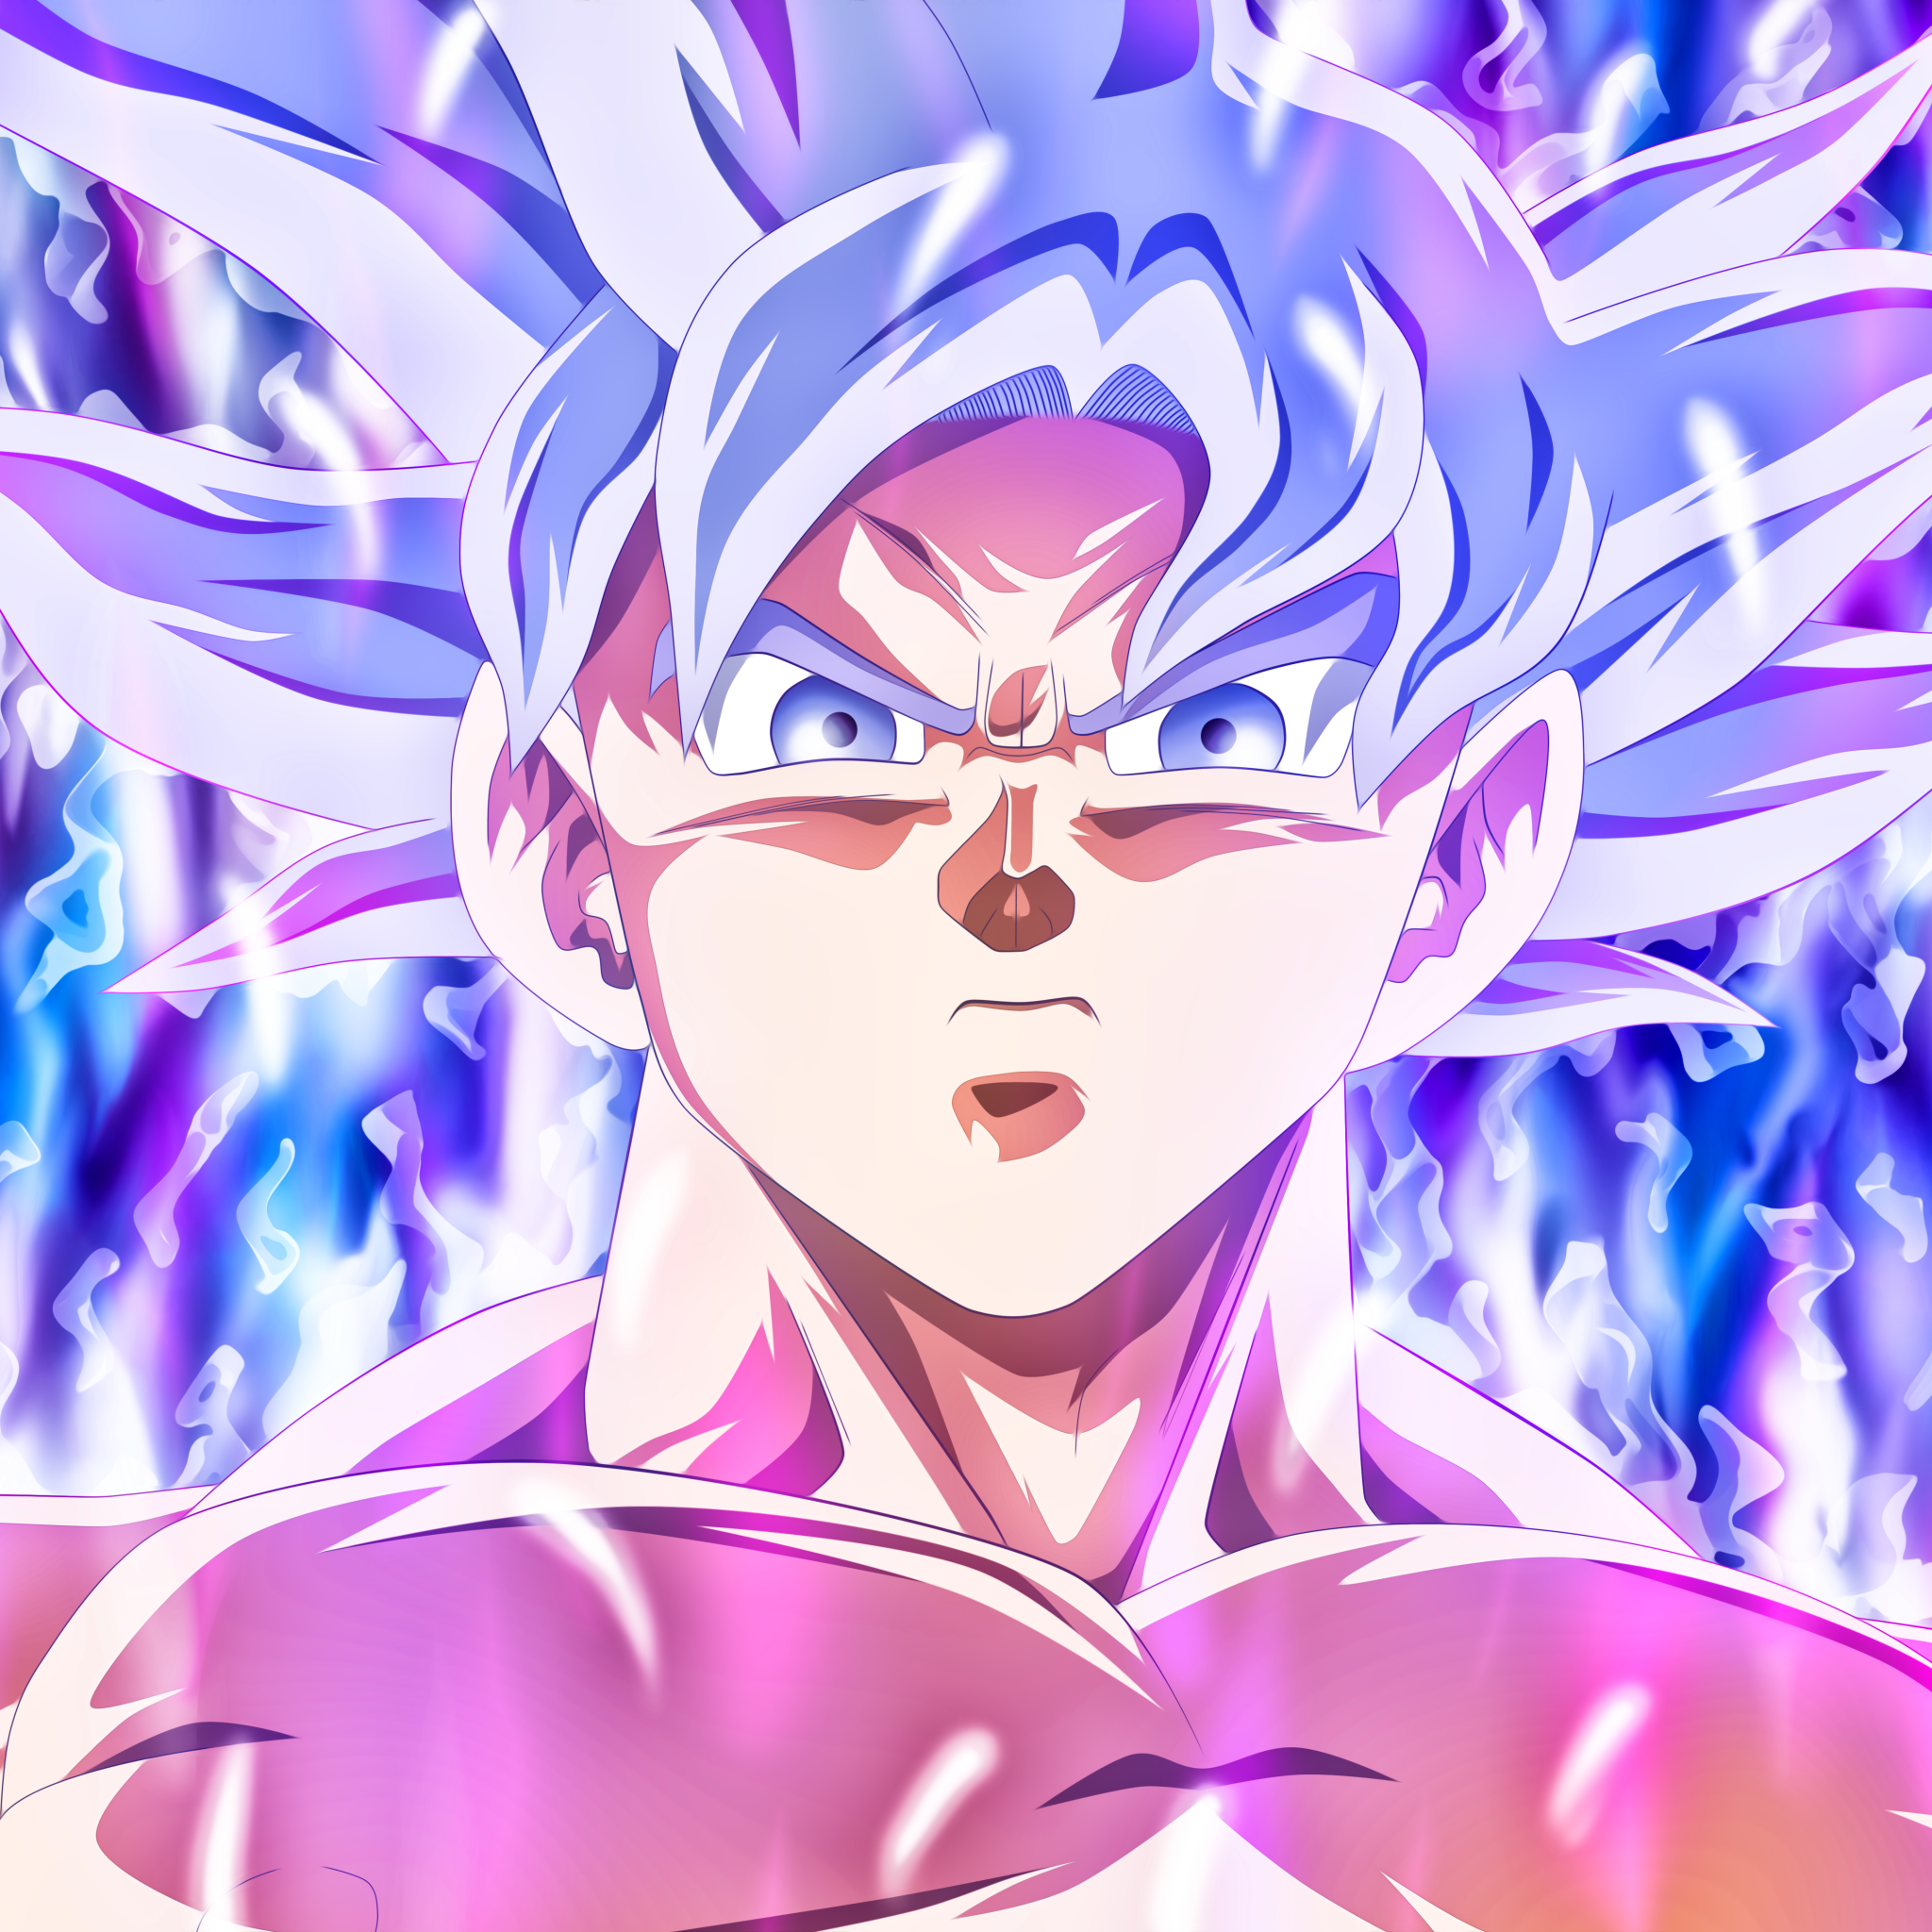 View, Download, Rate, And Comment On This Goku Mastered